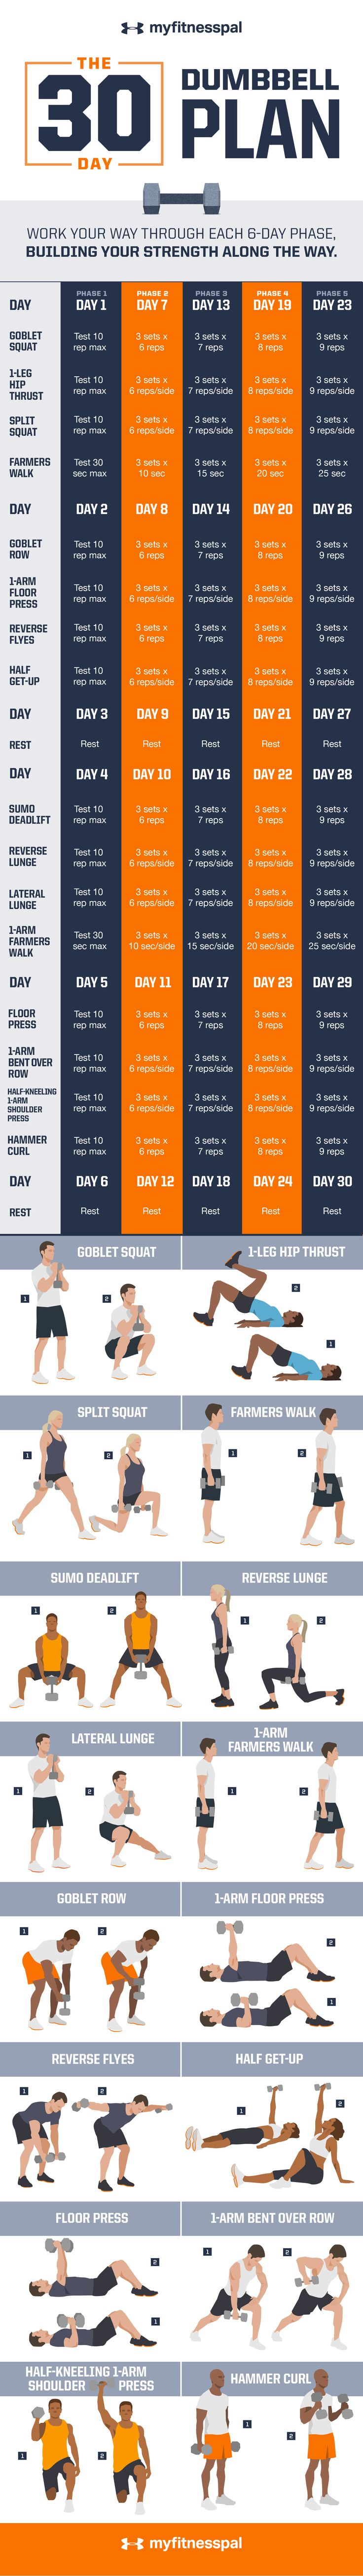 30 Day Dumbbell Plan workout                                                                                                                                                                                 More